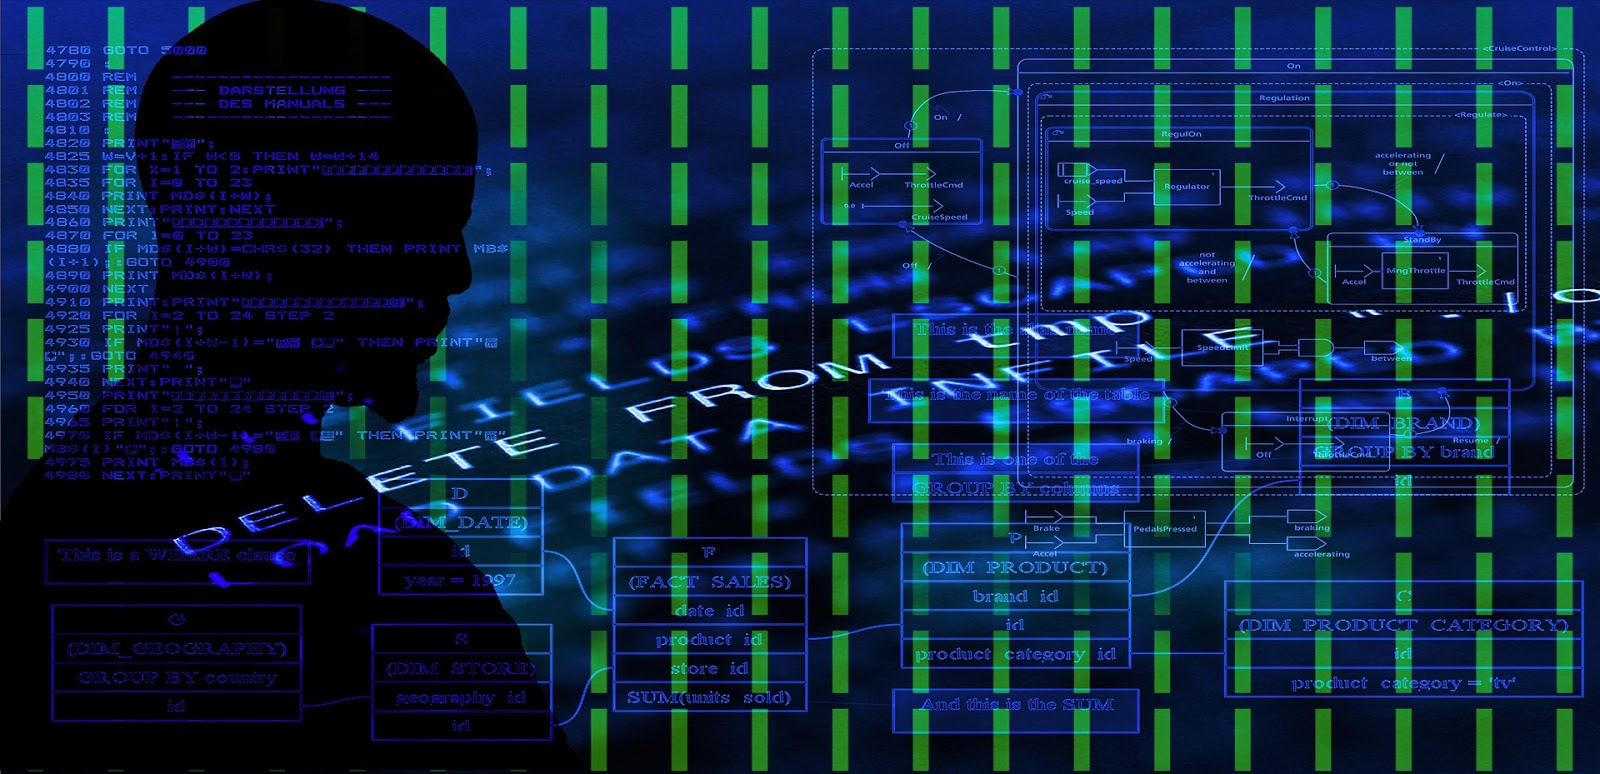 Russian hackers claim to have breached 3 US antivirus makers - E